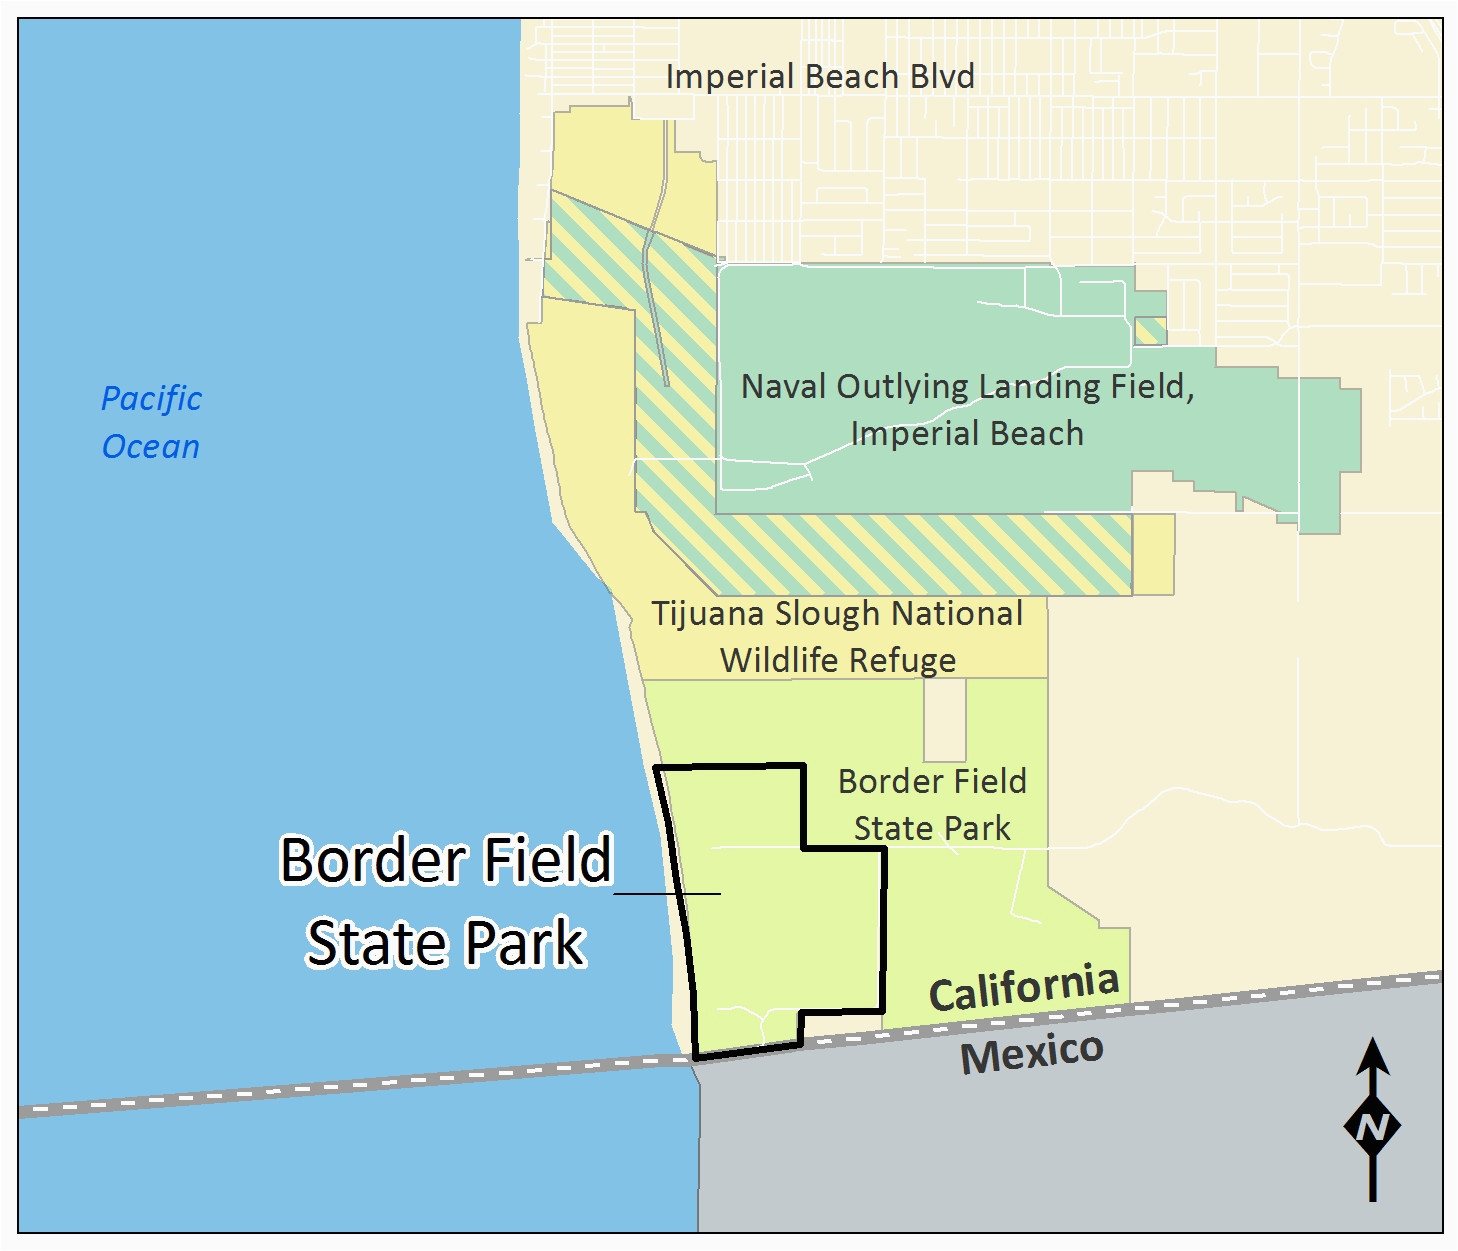 borders field state park